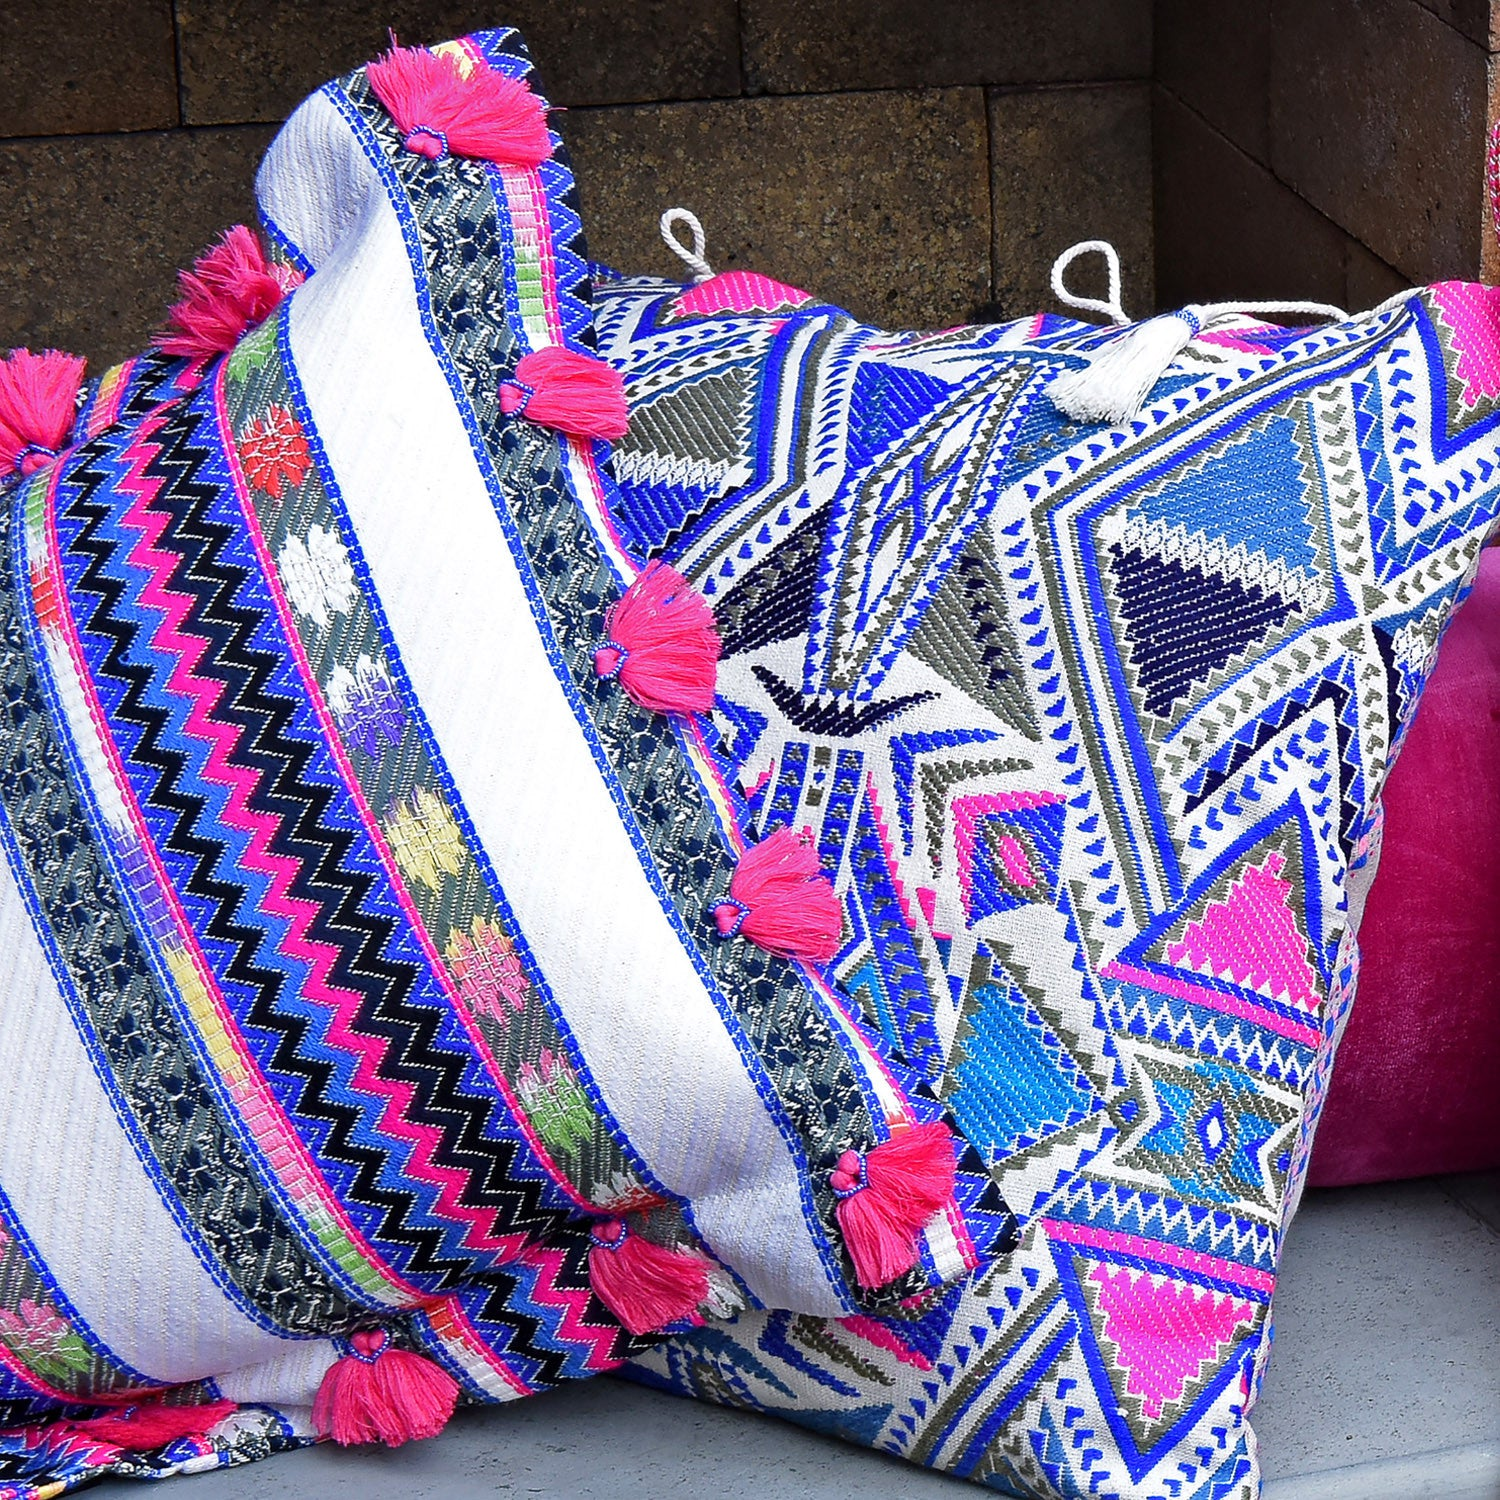 Bedouin-style cotton cushion with pink tassels - Bivain - 3